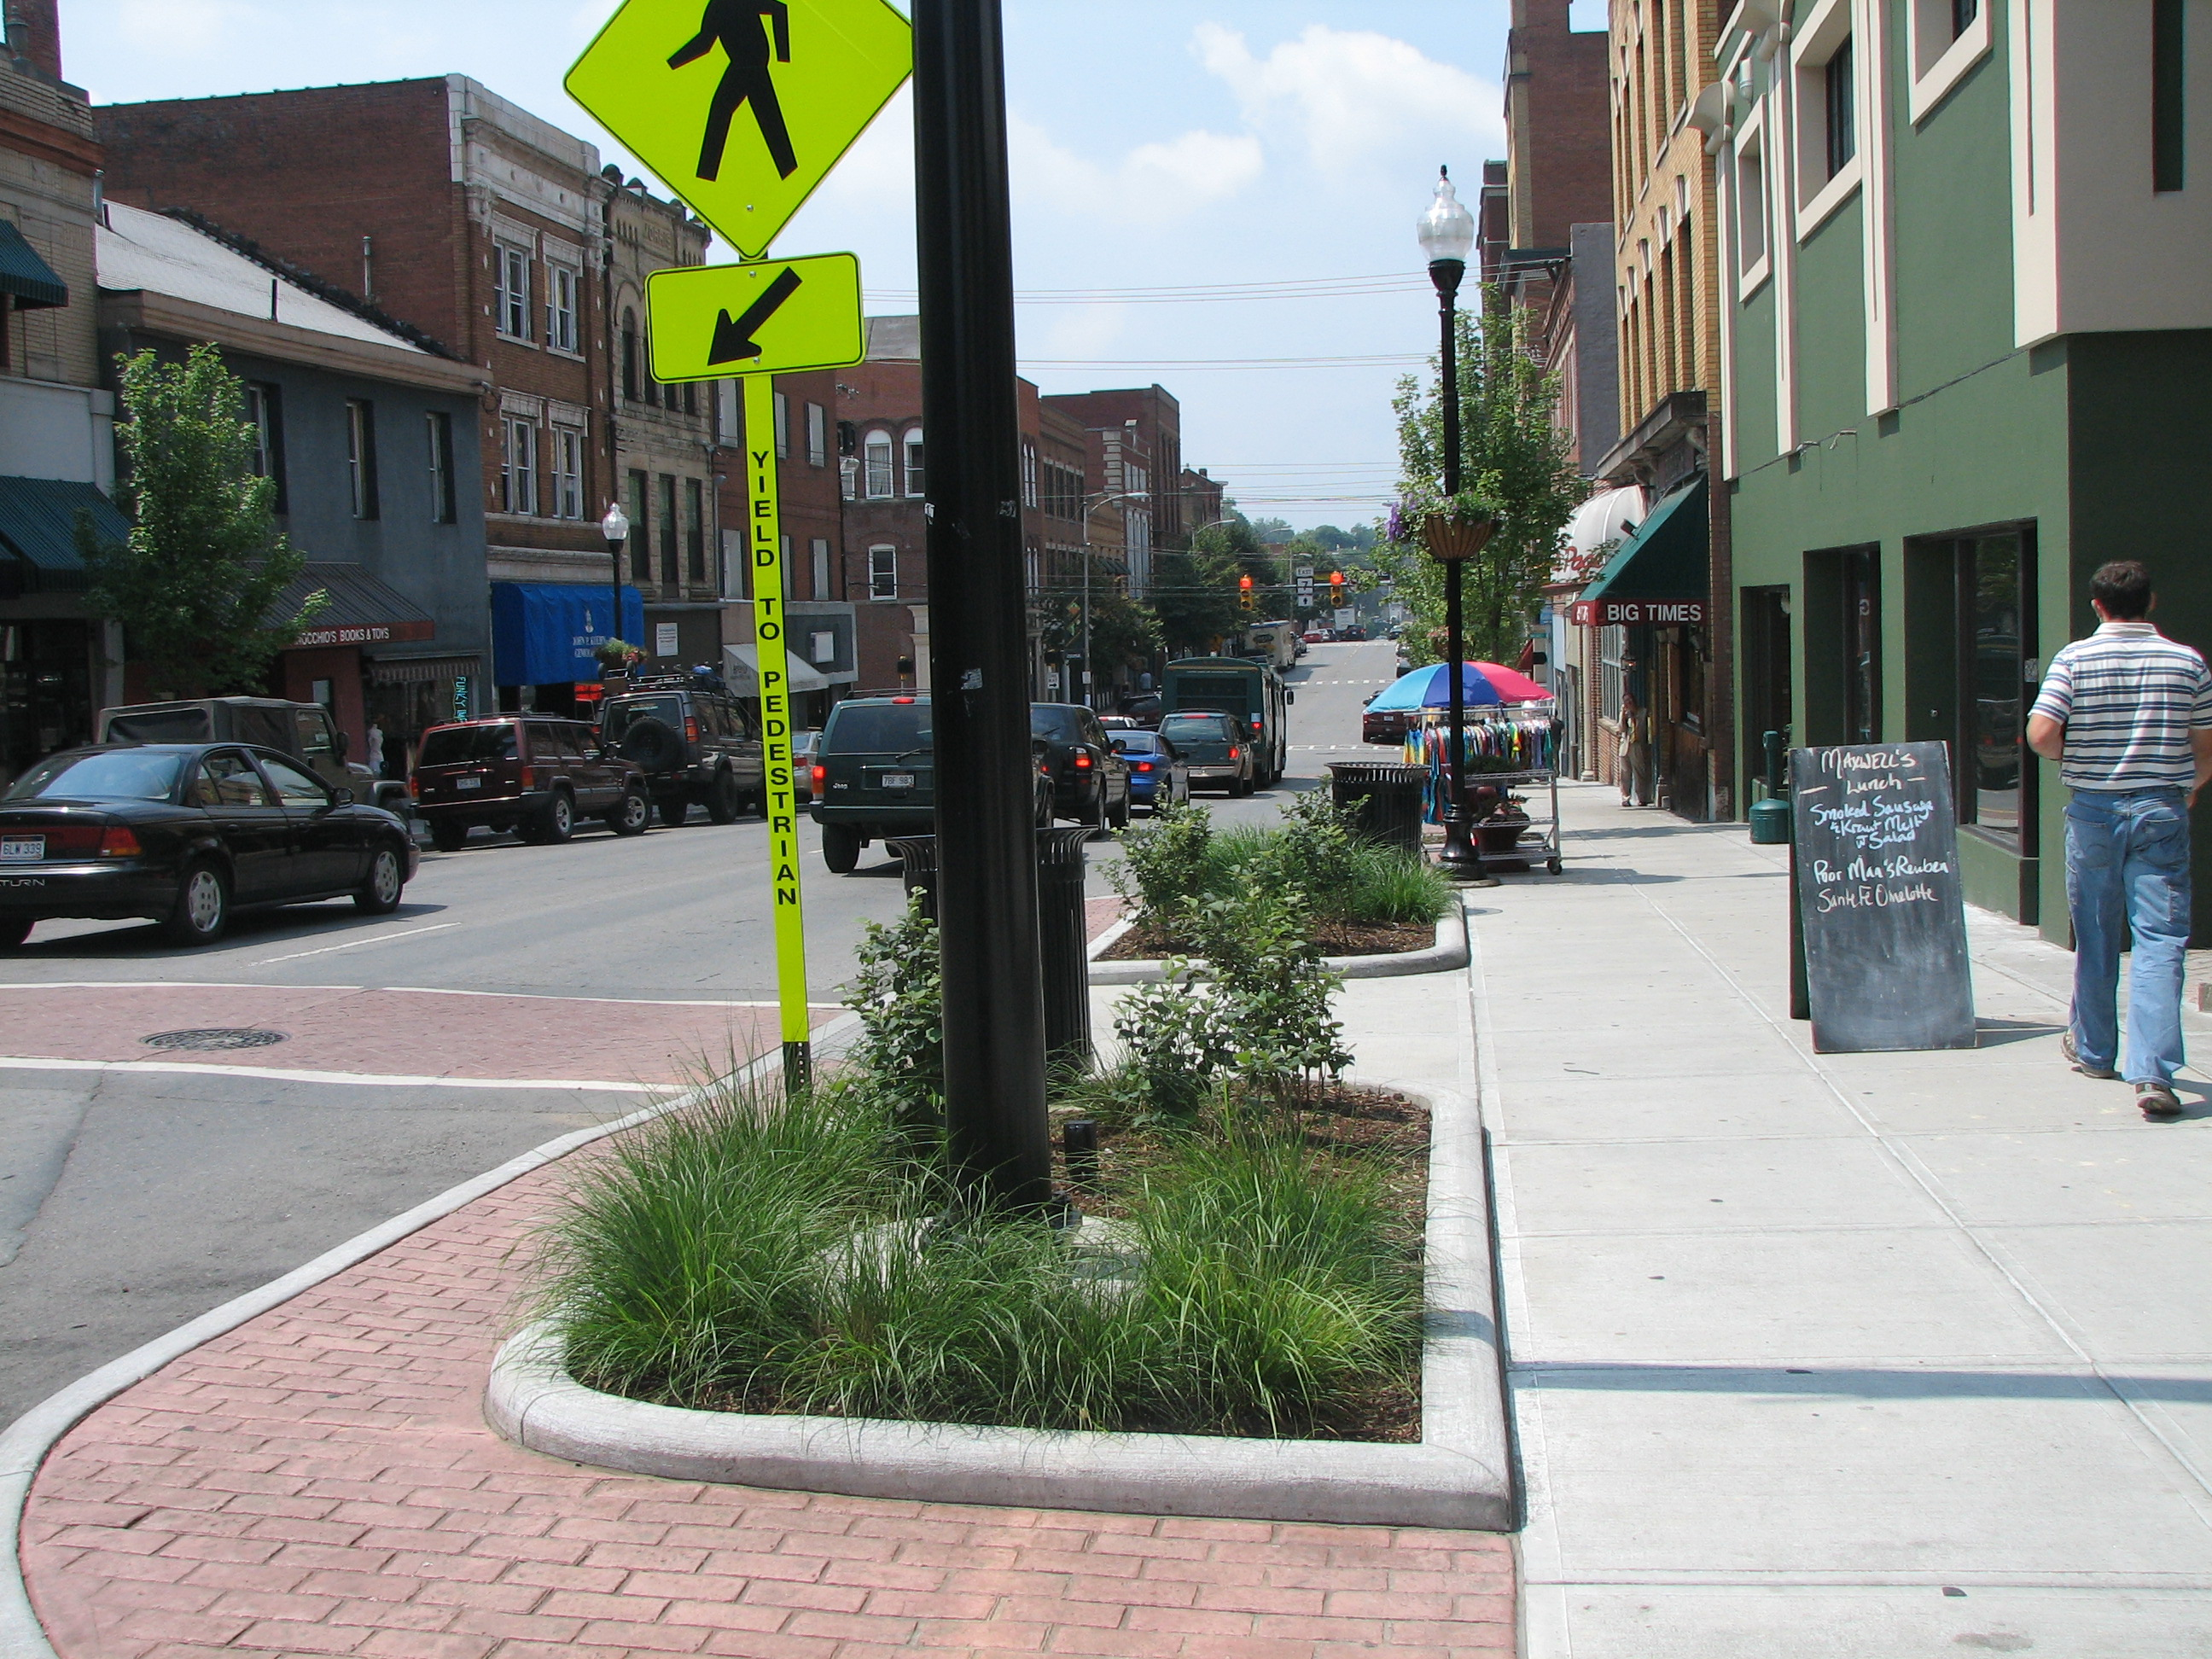 On Thursday April 19 2012 From 900 AM To 1000 The City Of Morgantown Will Be Holding A Meeting For High Street Streetscape Improvement Project